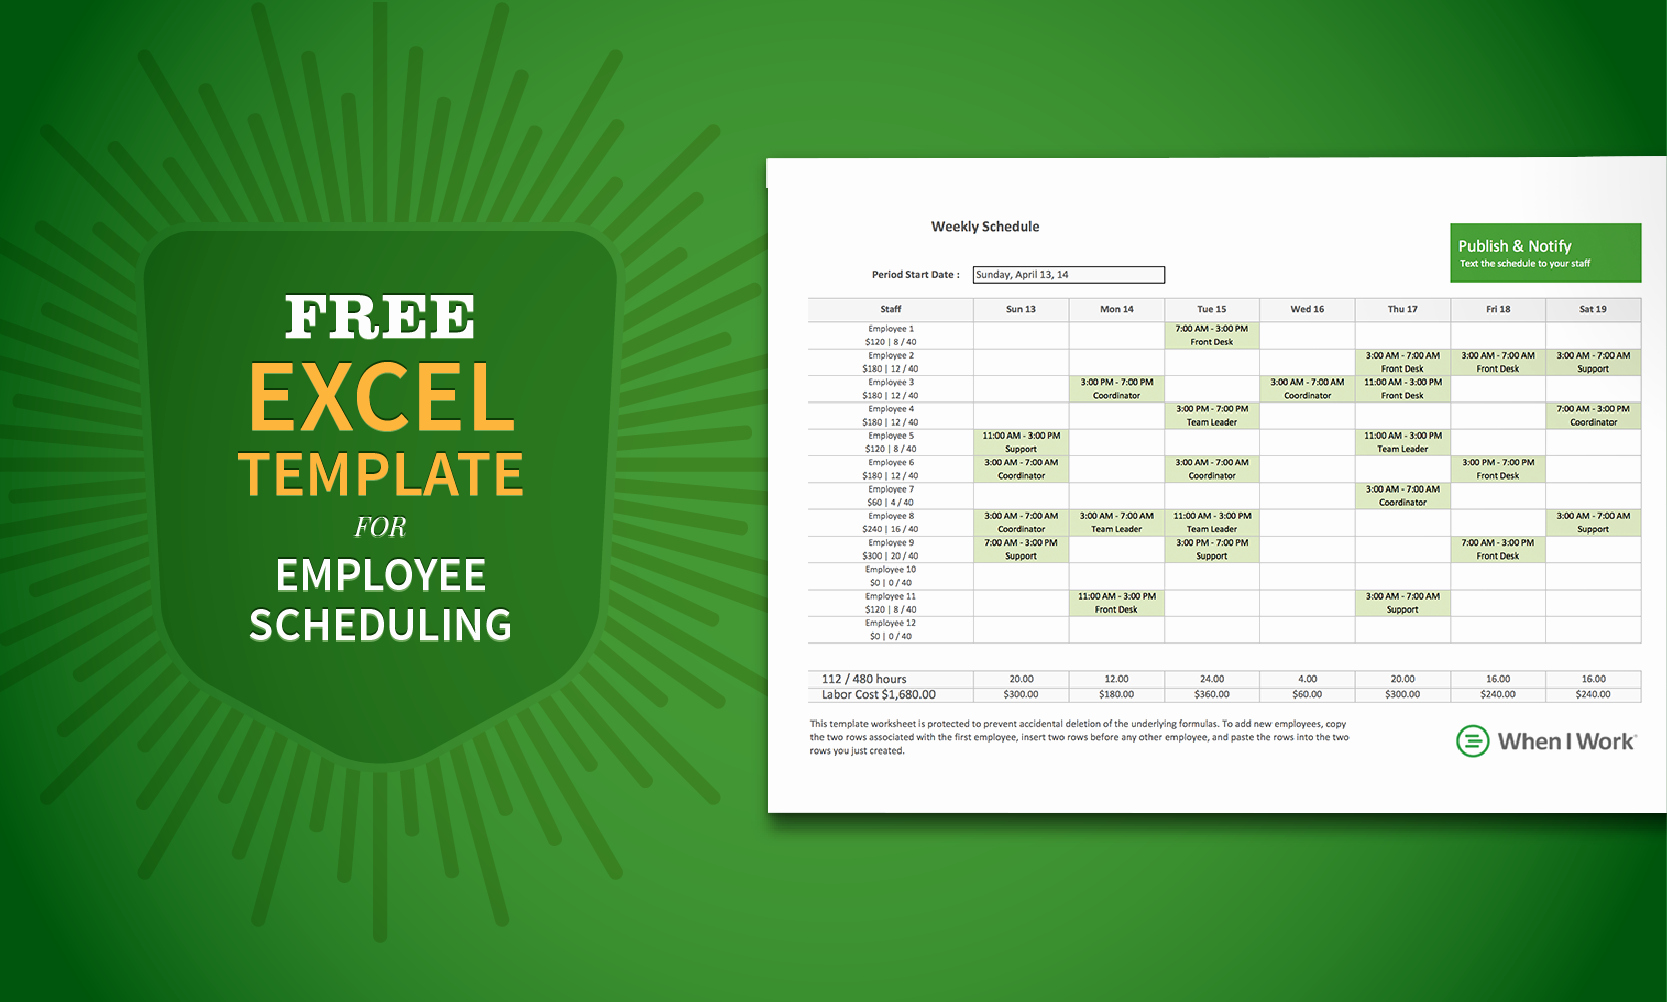 Excel Work Schedule Template Best Of Free Excel Template for Employee Scheduling